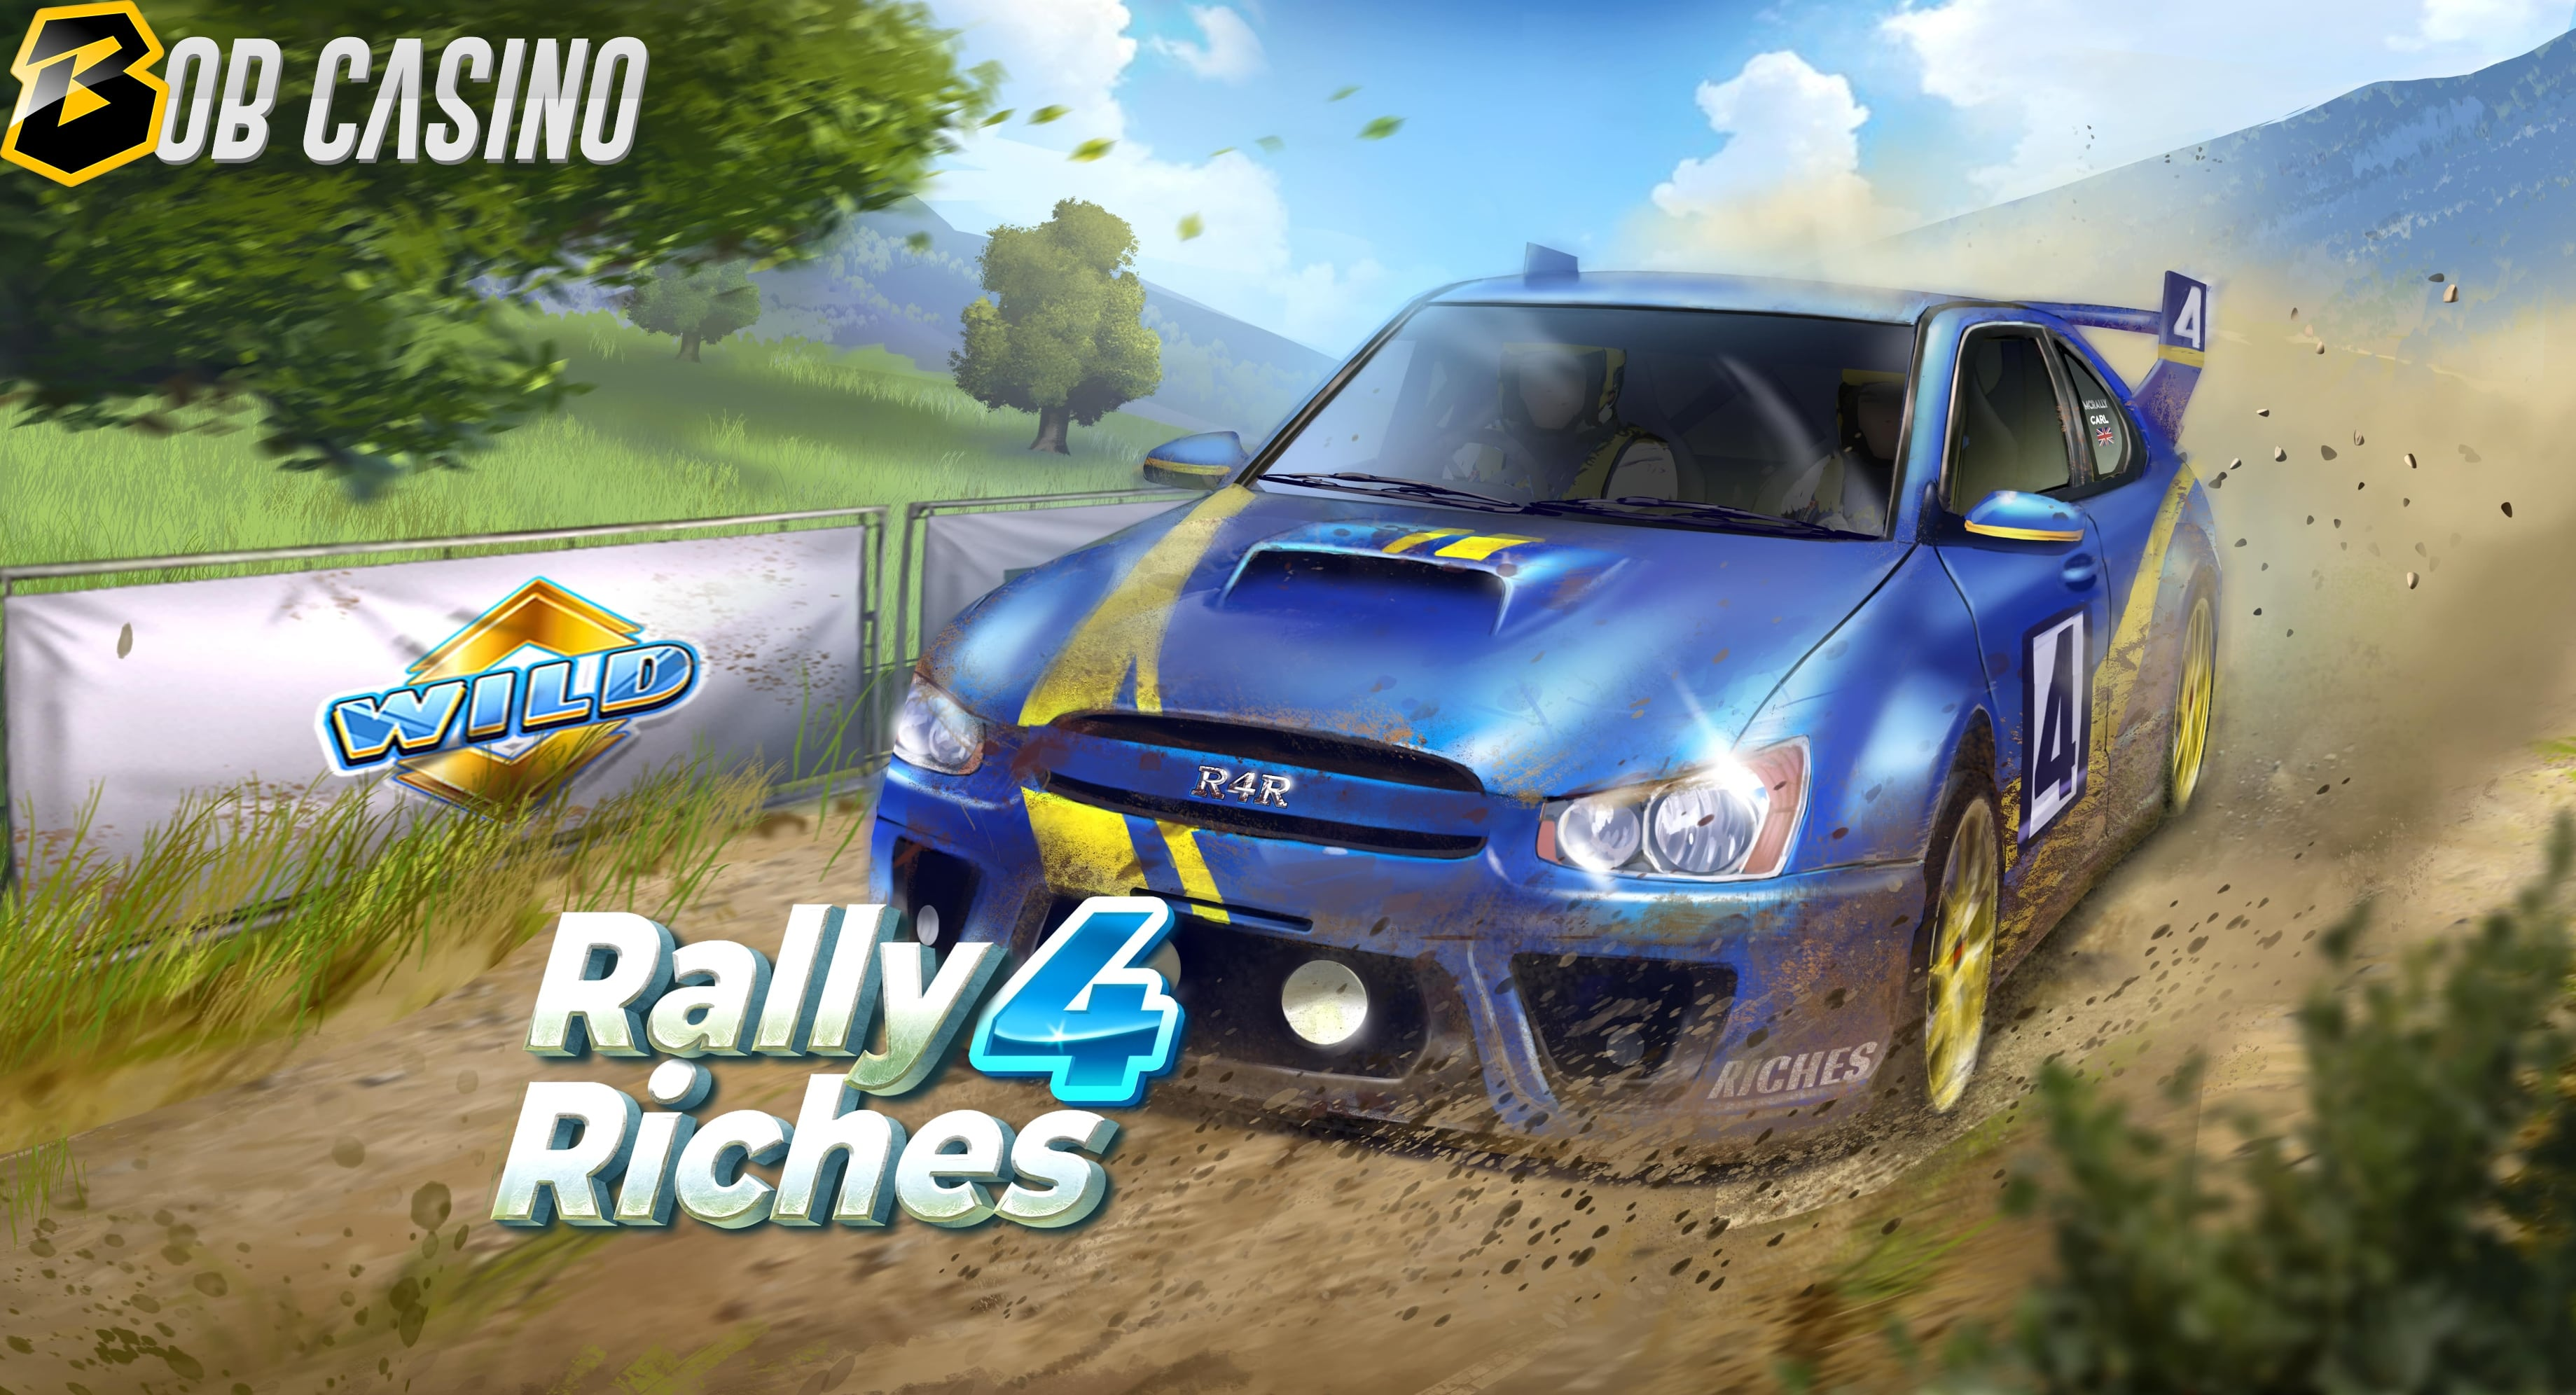 Rally 4 Riches slot game from Play'N Go.